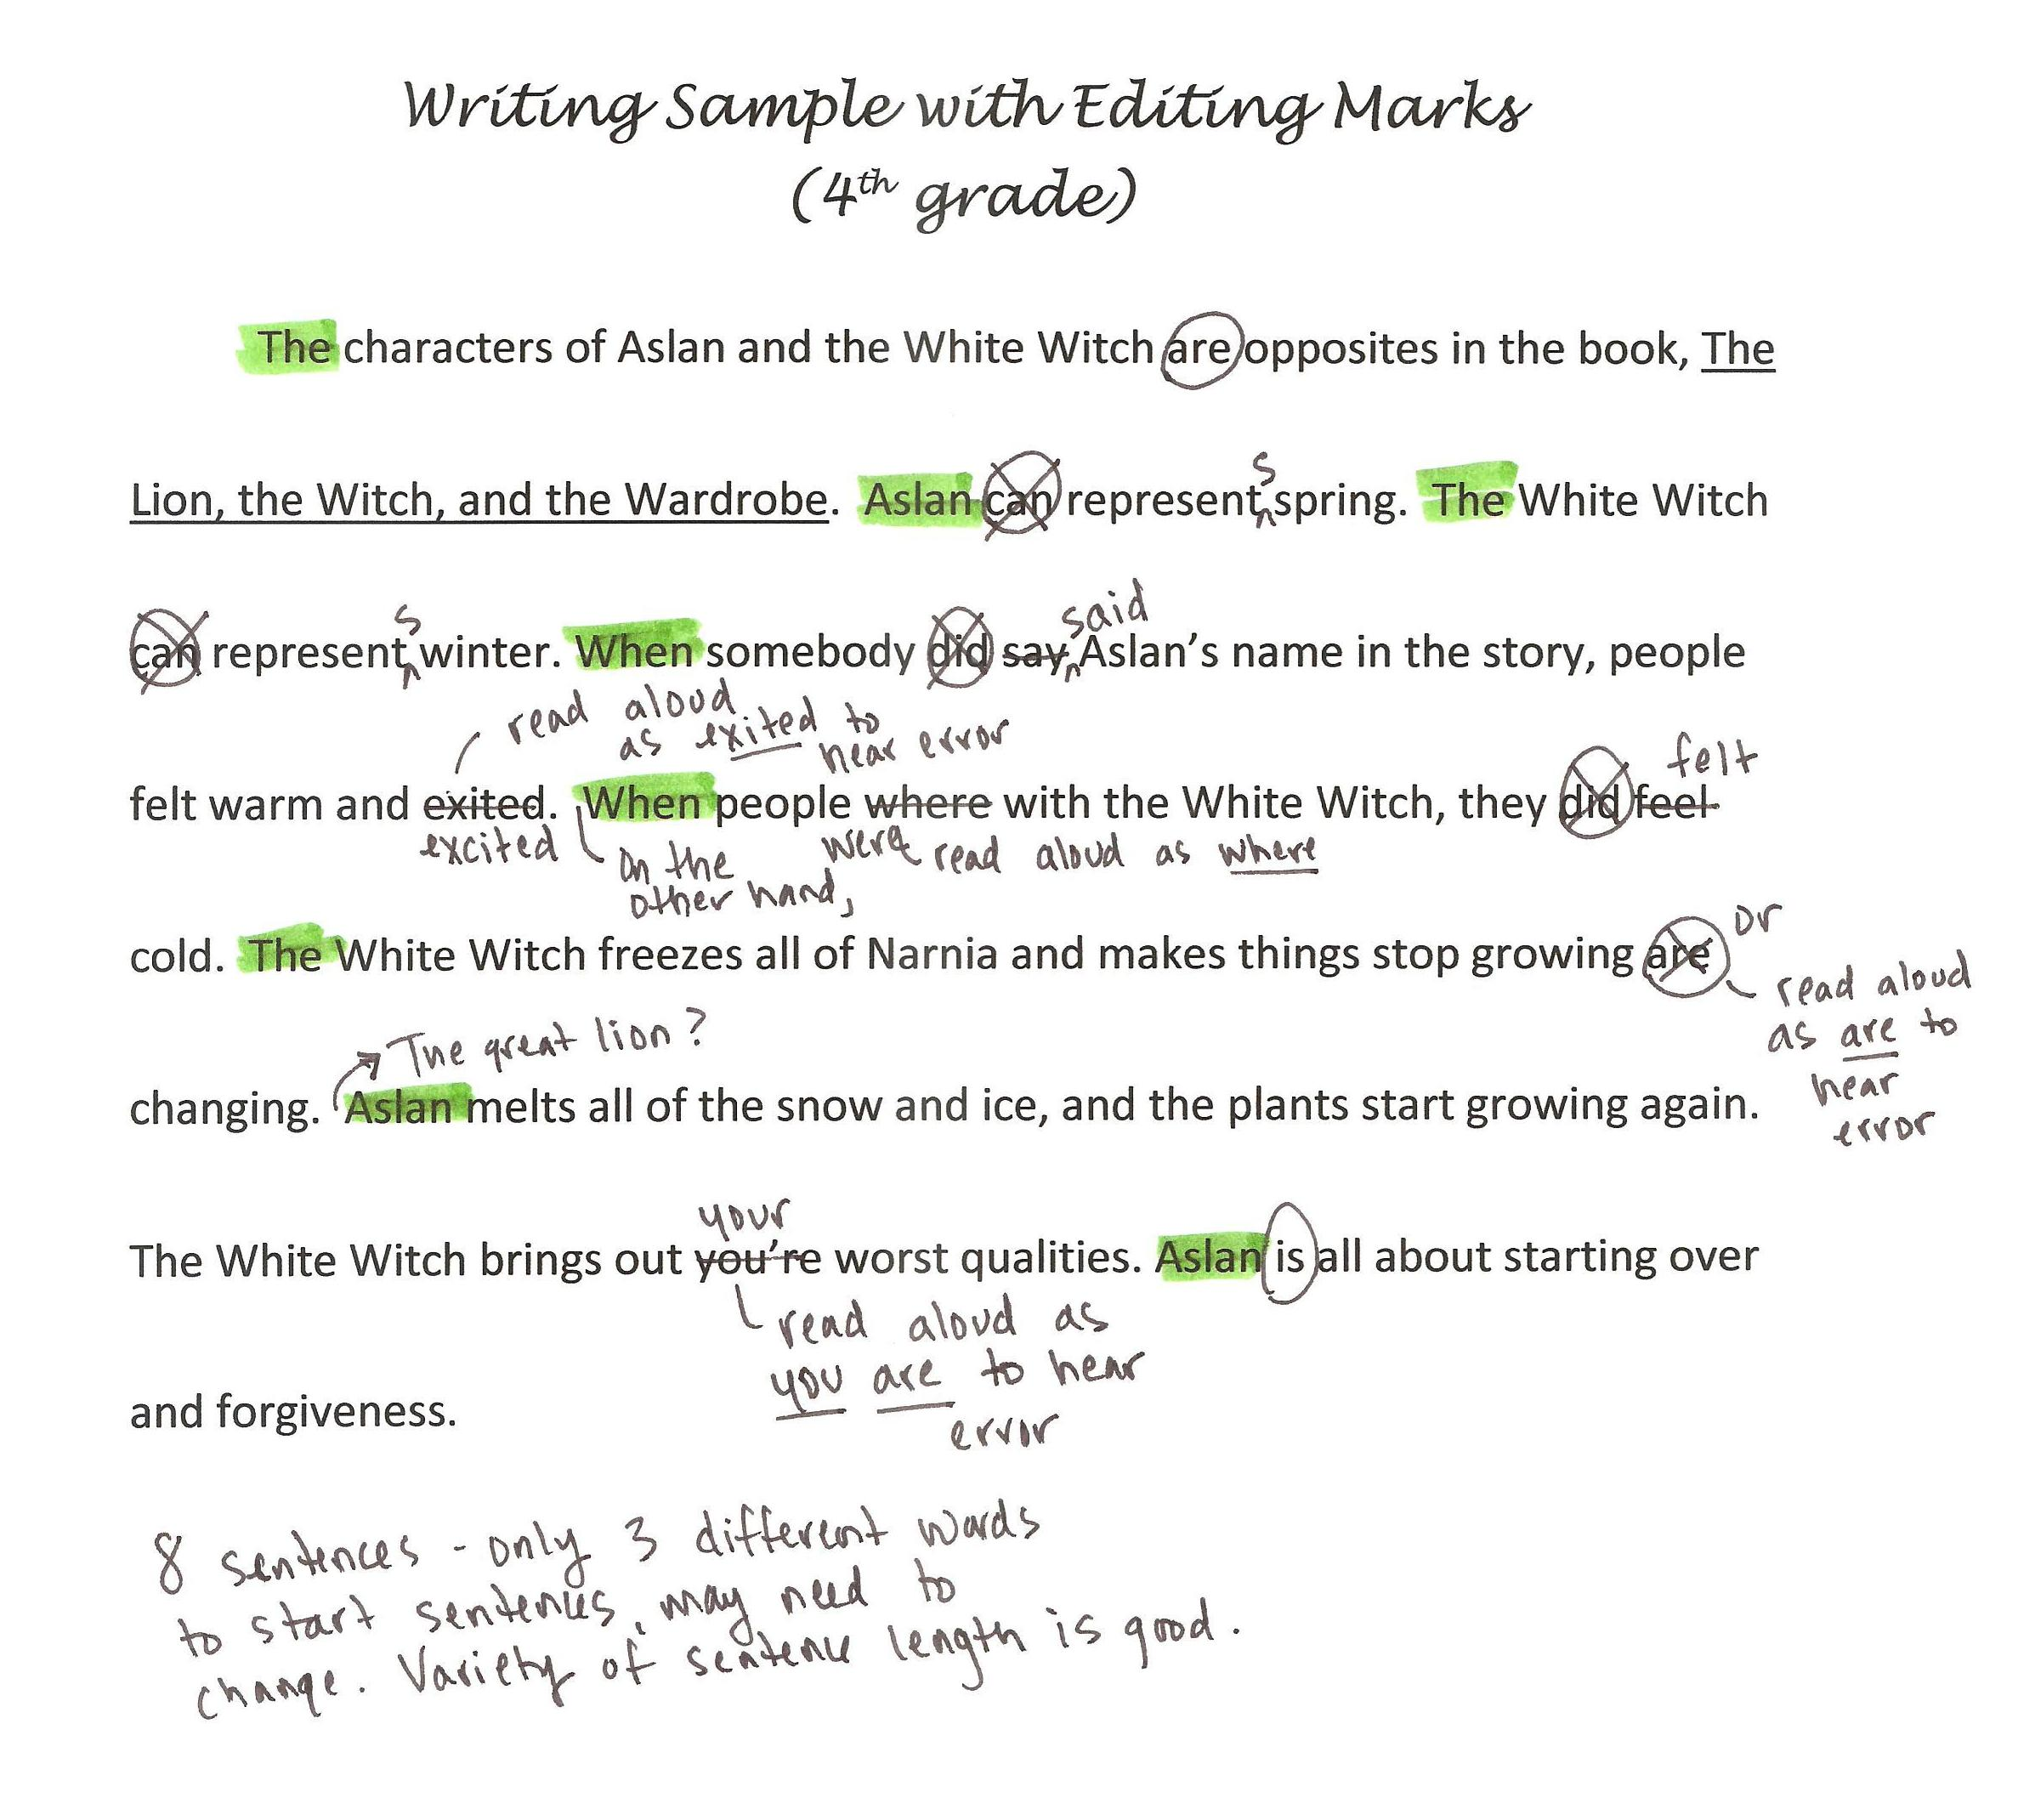 002 Writing Sample With Editing Marks1 Free Essay Checker For Grammar Incredible Full